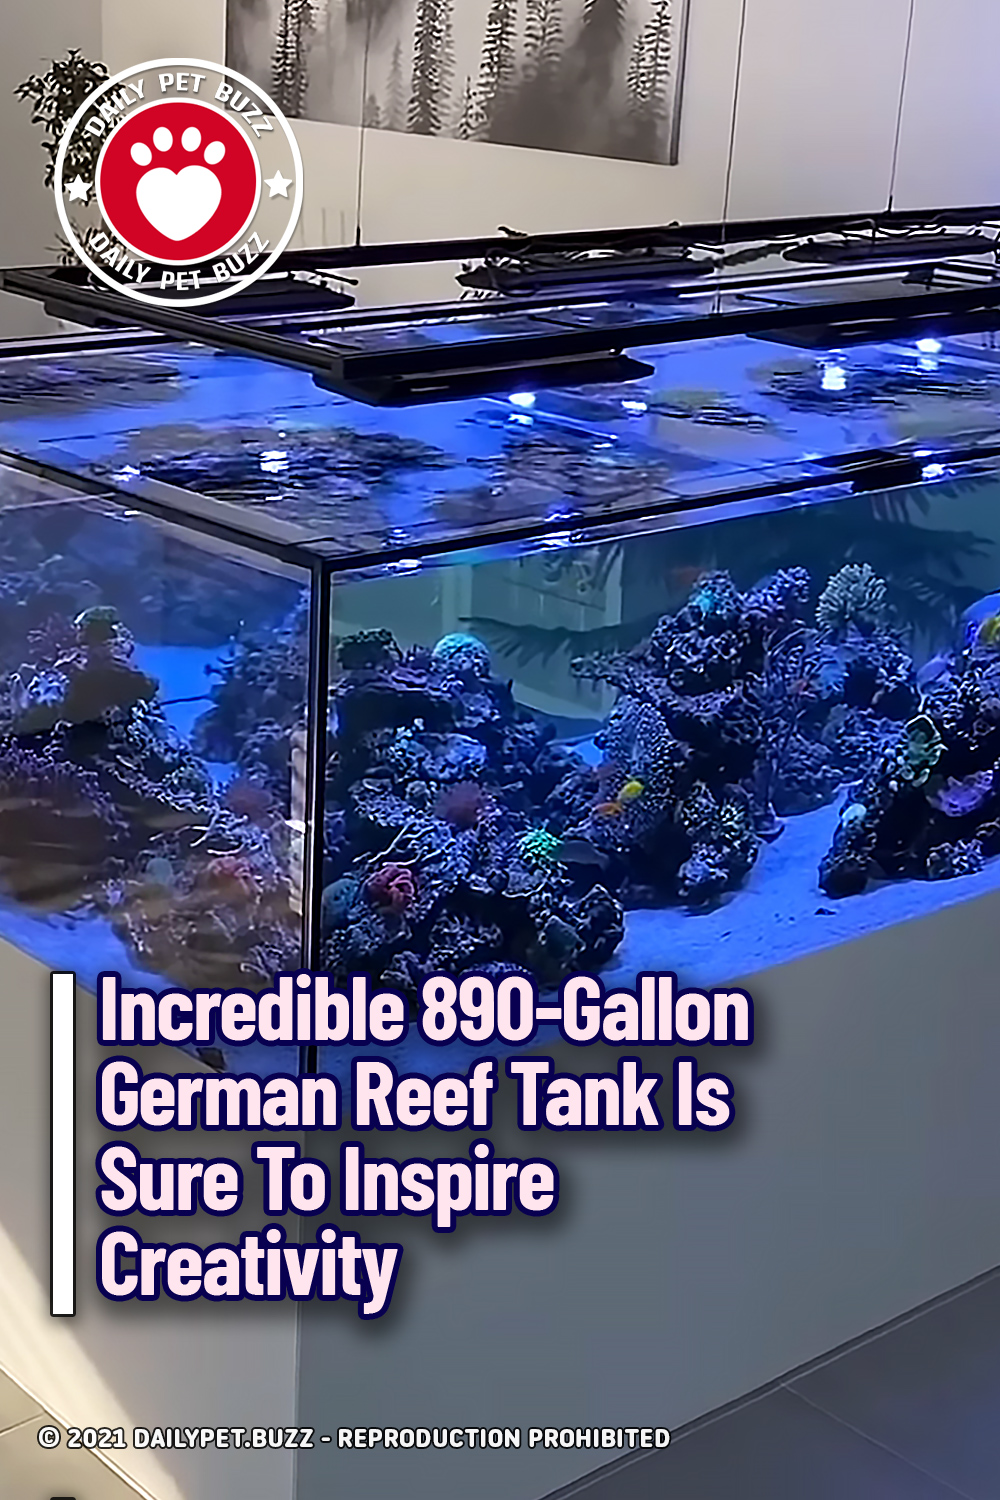 Incredible 890-Gallon German Reef Tank Is Sure To Inspire Creativity